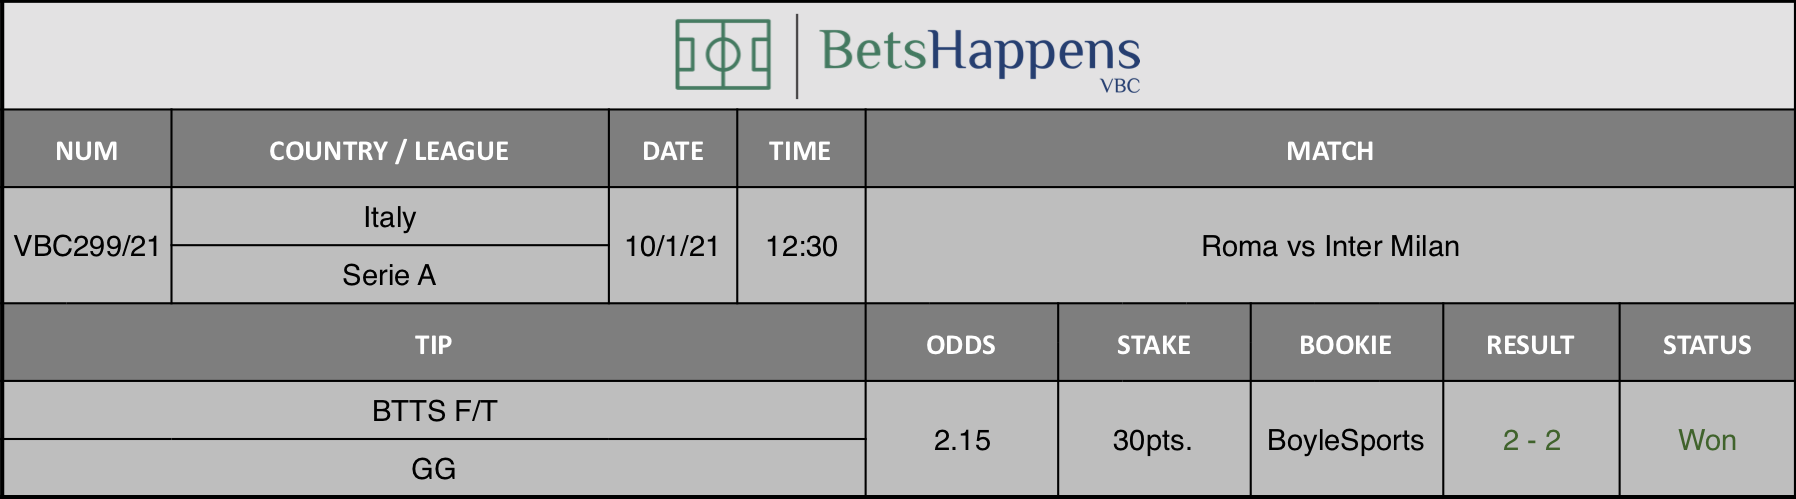 Results of our tip for the Roma vs Inter Milan  match where BTTS F/T  GG is recommended.